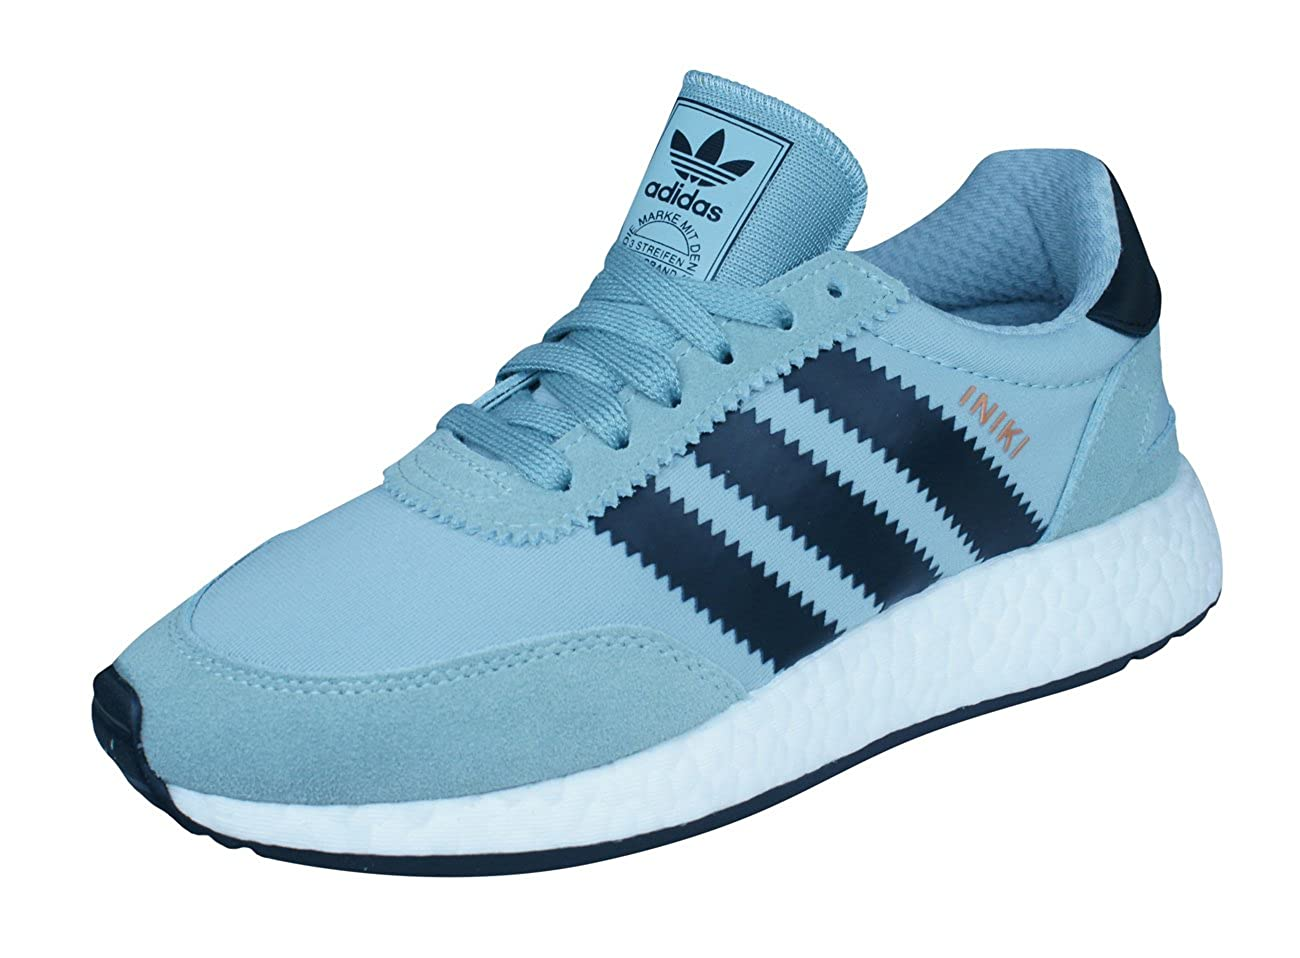 Adidas Originals Iniki Runner I 5923 Trainers Boost Running